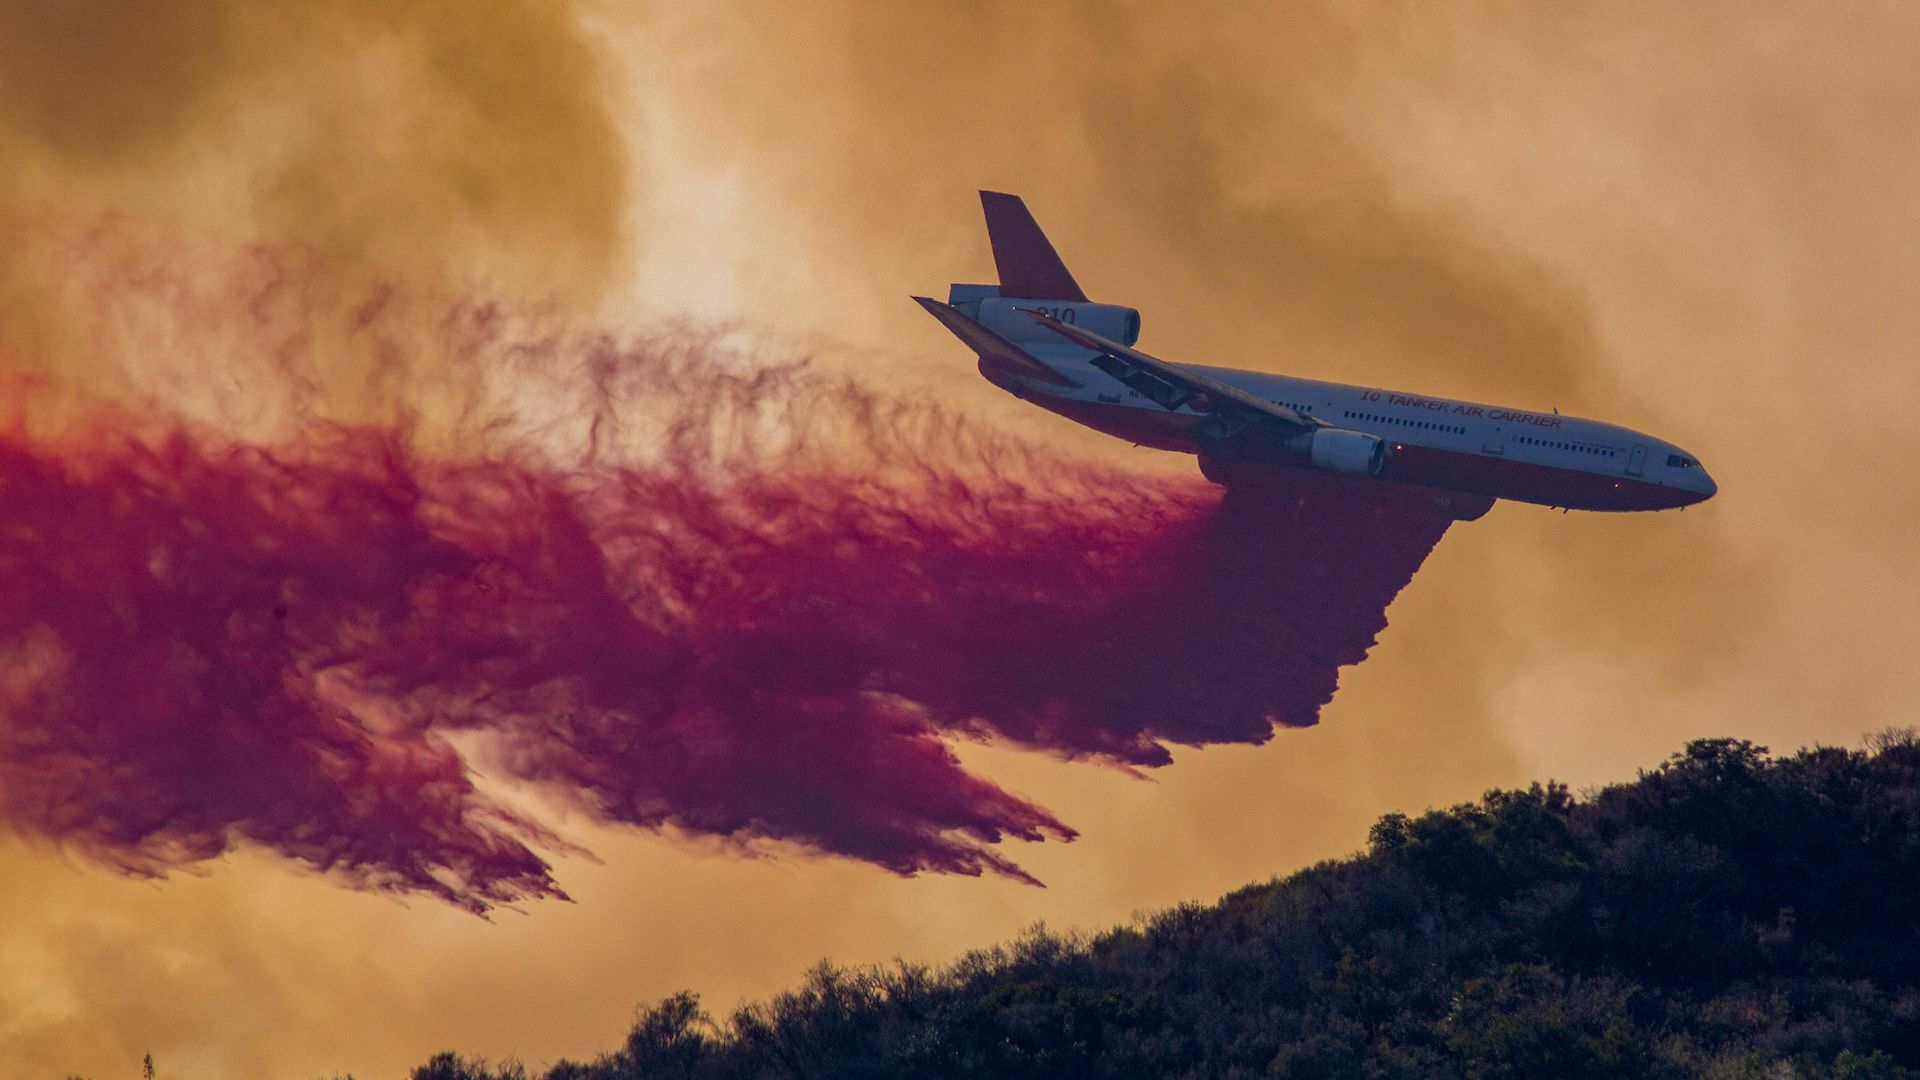 The Tanker Air Carrier DC-10 jet drops fire retardant at the Holy Fire near Lake Elsinore, in Orange County, California, on August 7, 2018.